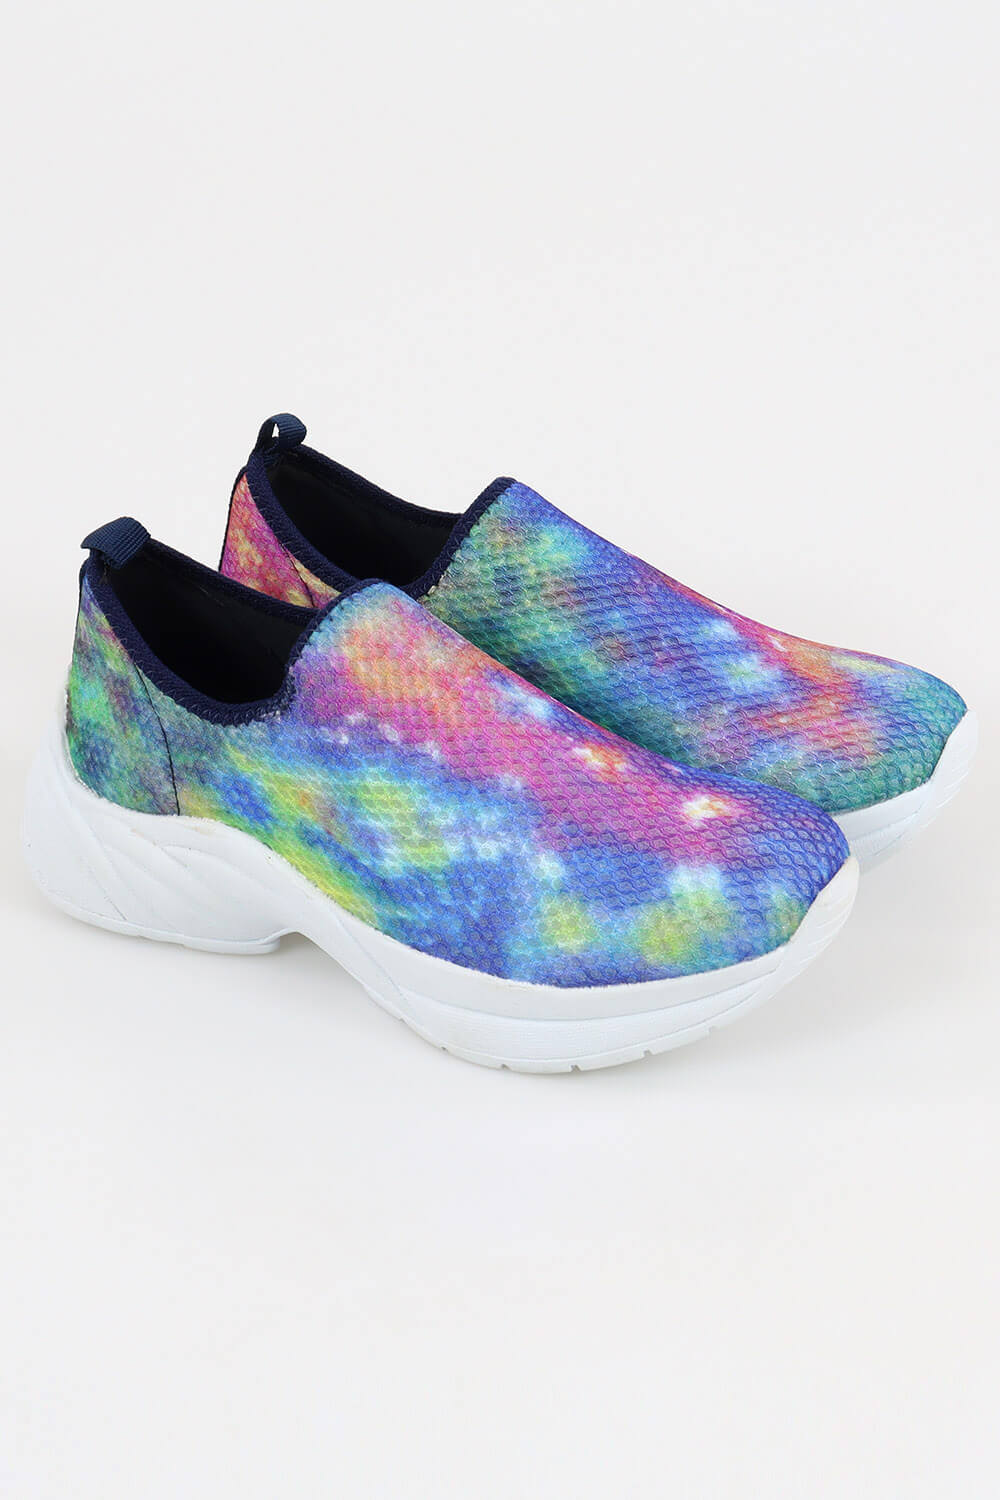 Slip On Chiquiteira Casual Calce Fácil Nylon Tie Dye AC